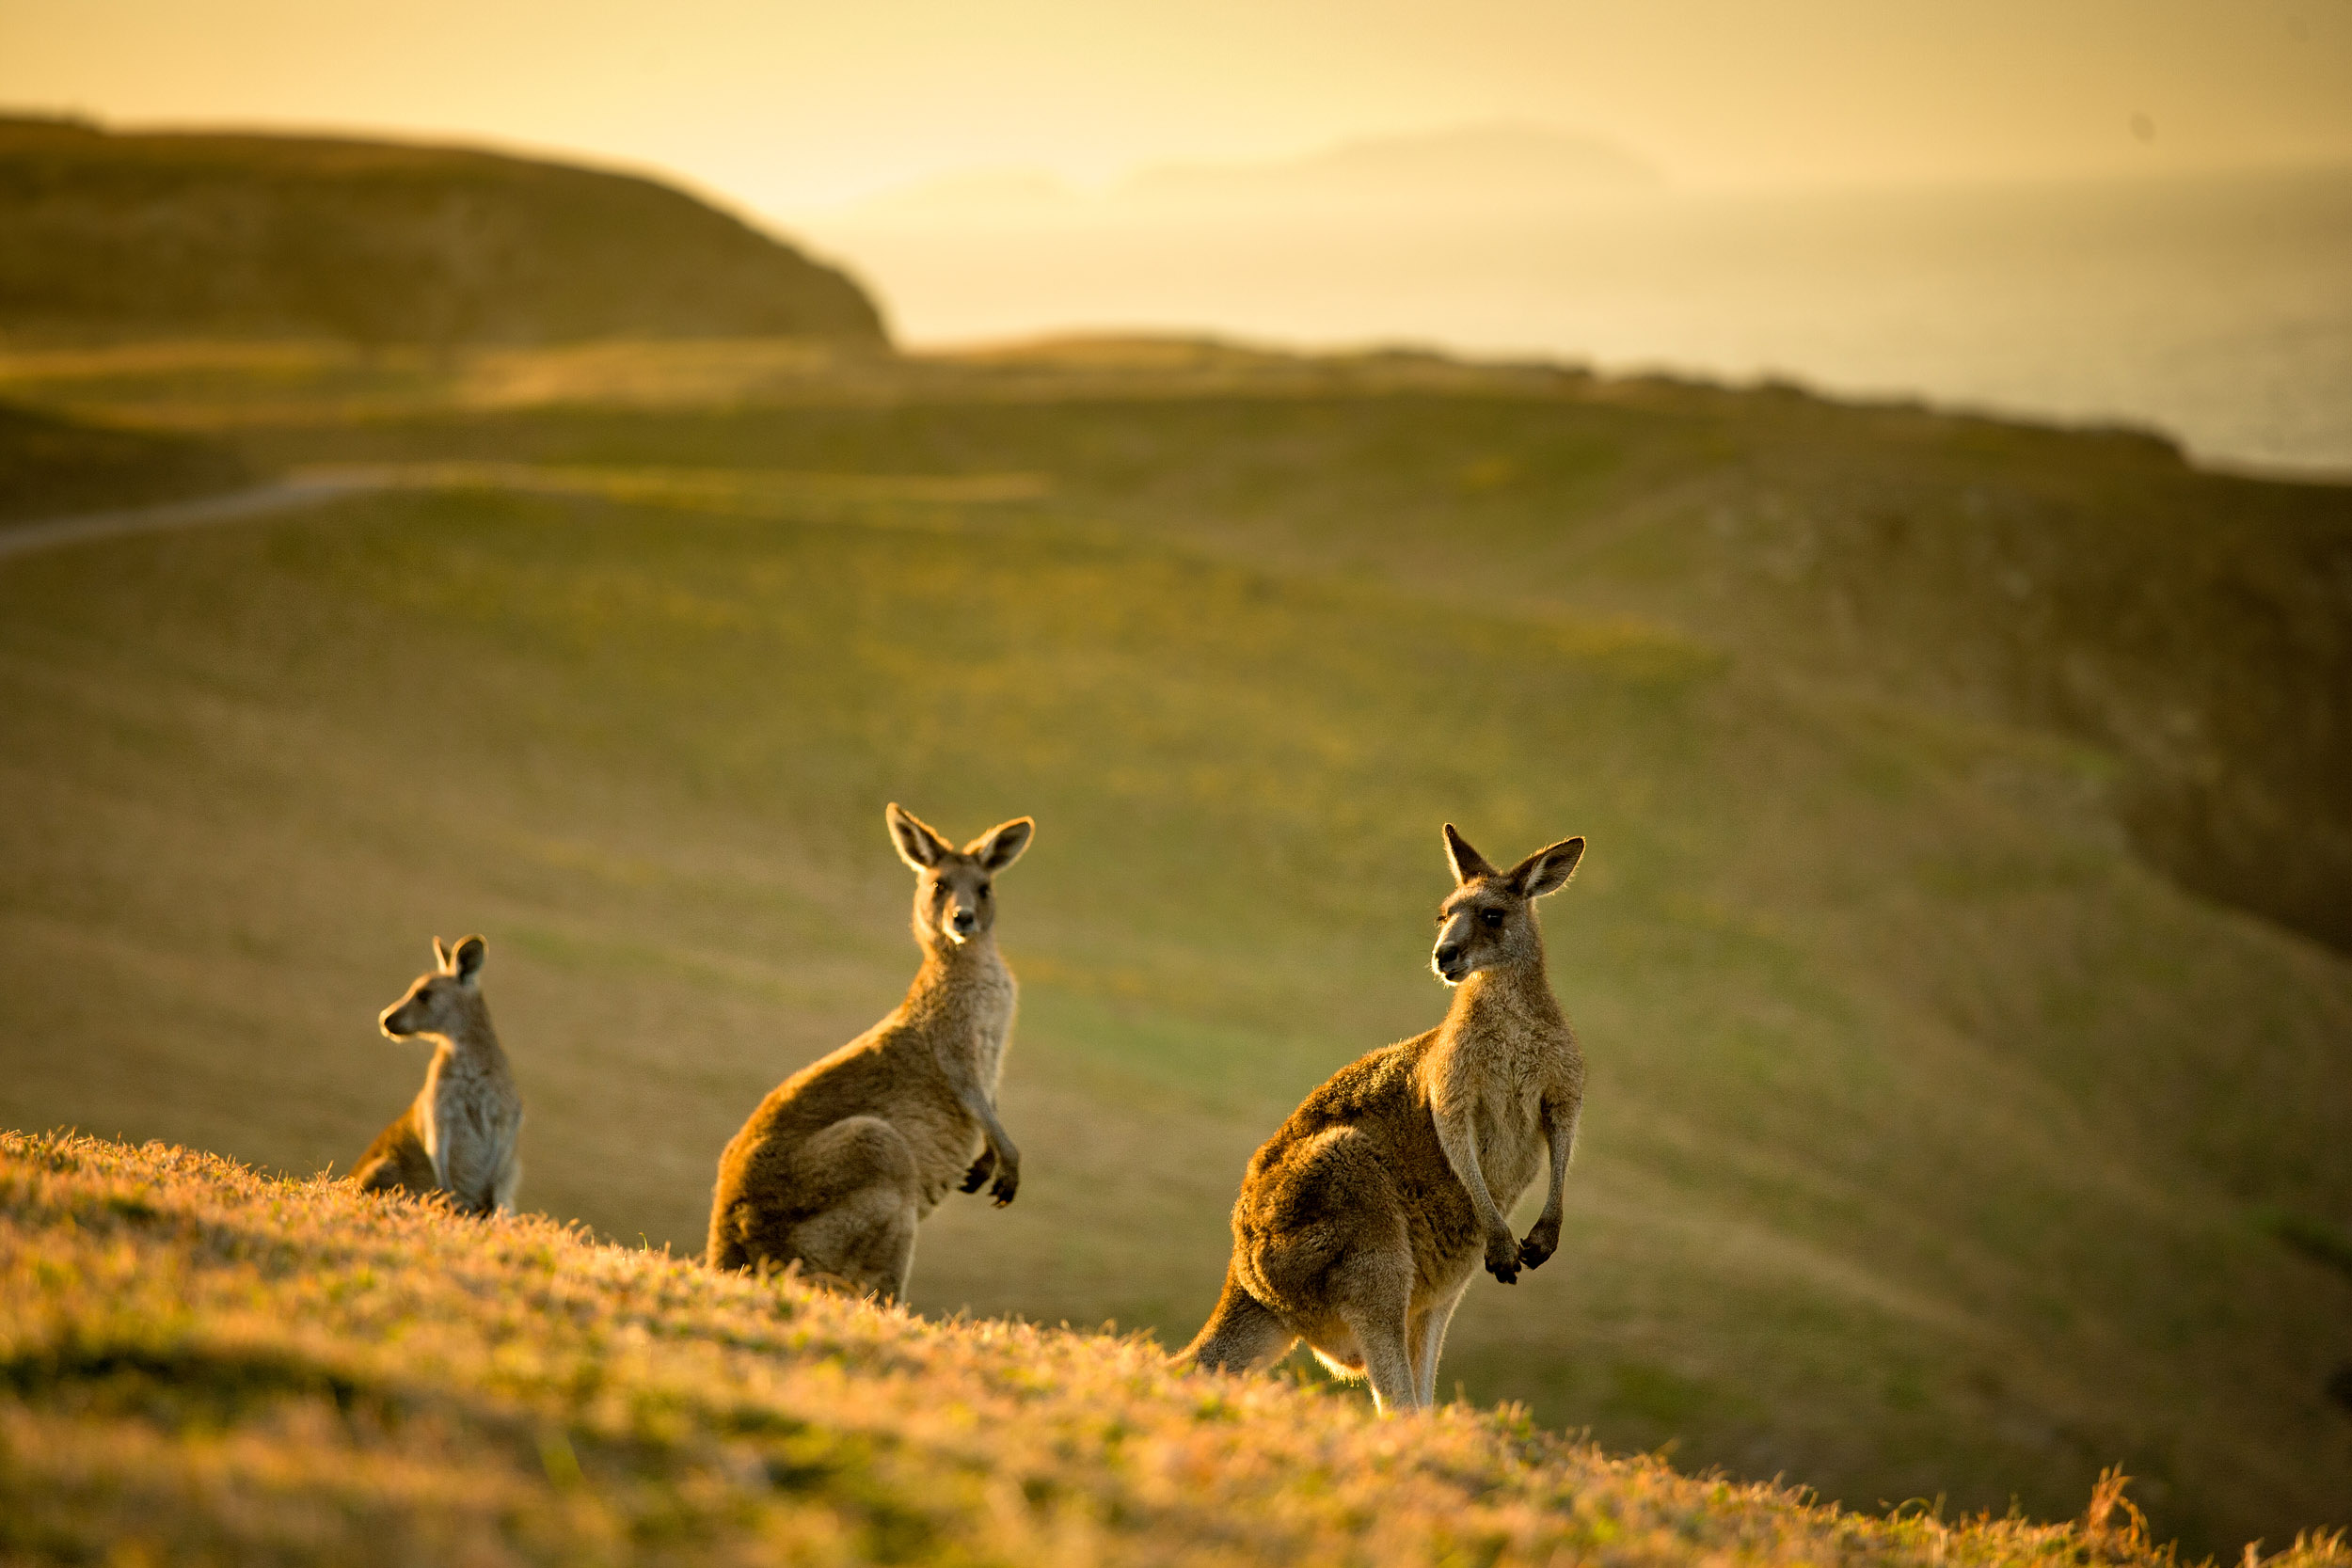 kangaroos-emerald-beach-headland-nsw.jpg